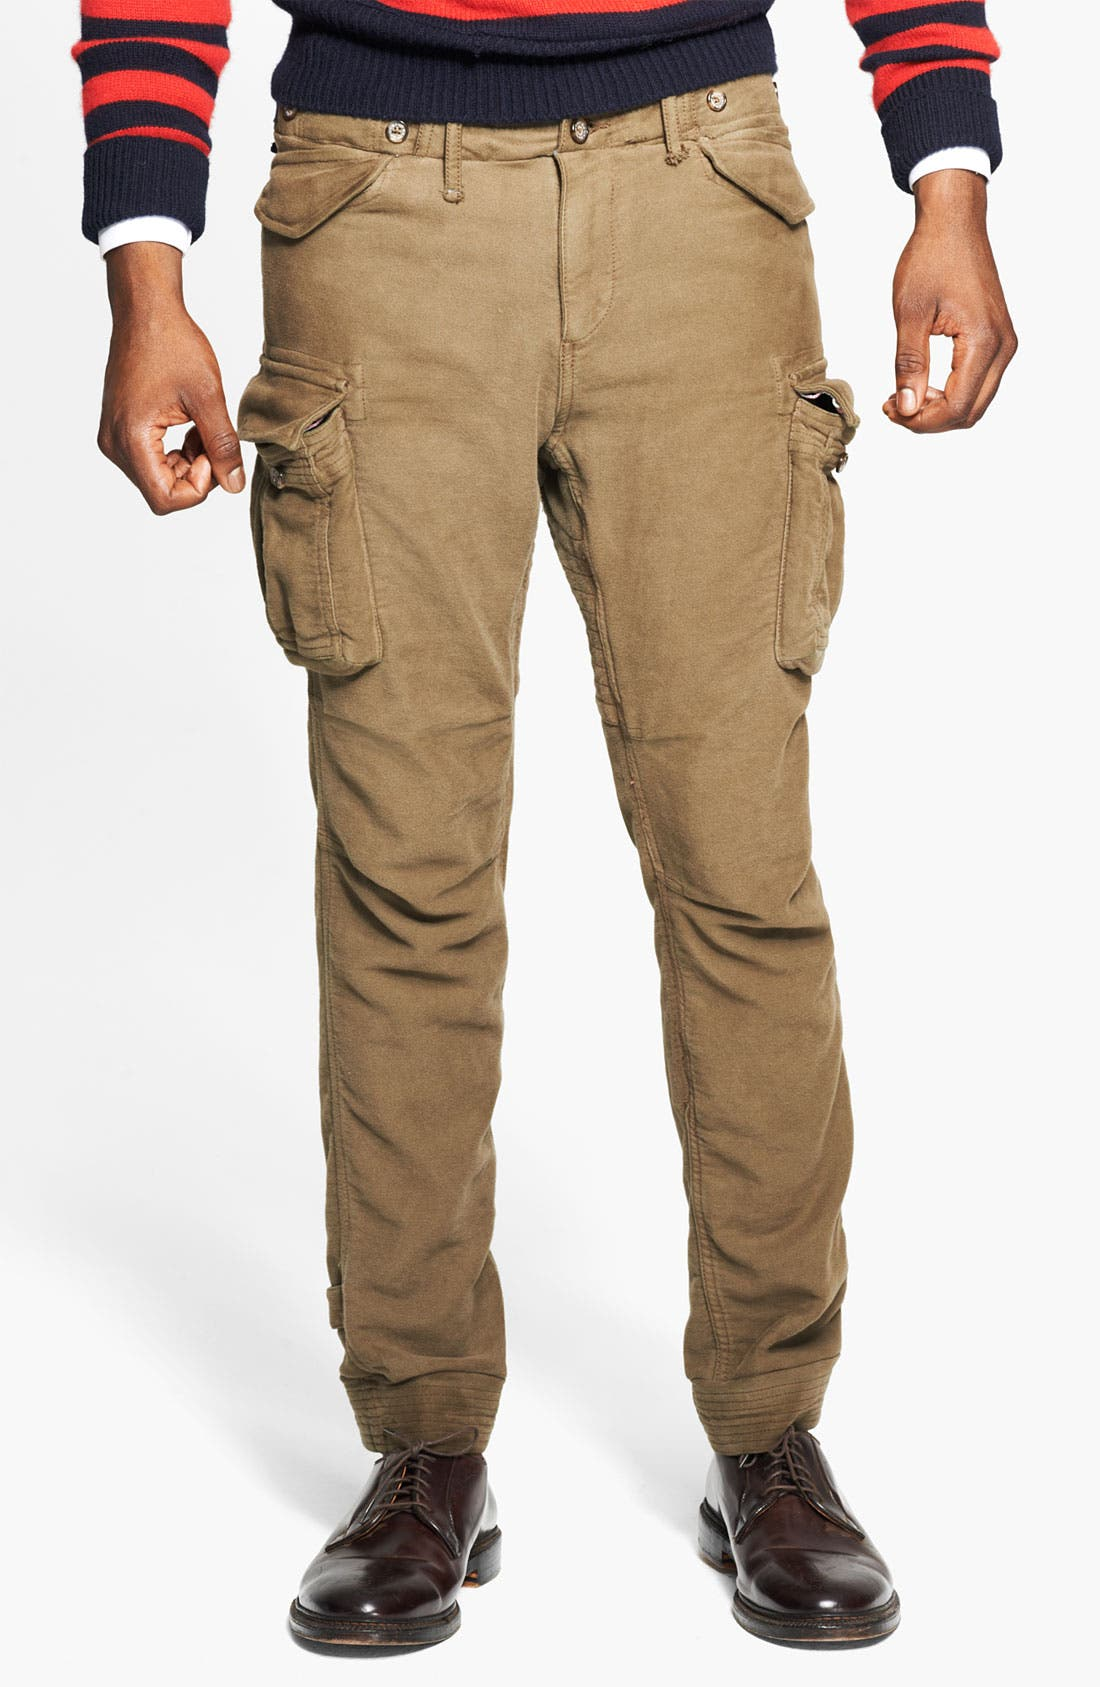 Skinny Moleskin Cotton Cargo Pants,                             Alternate thumbnail 2, color,                             301